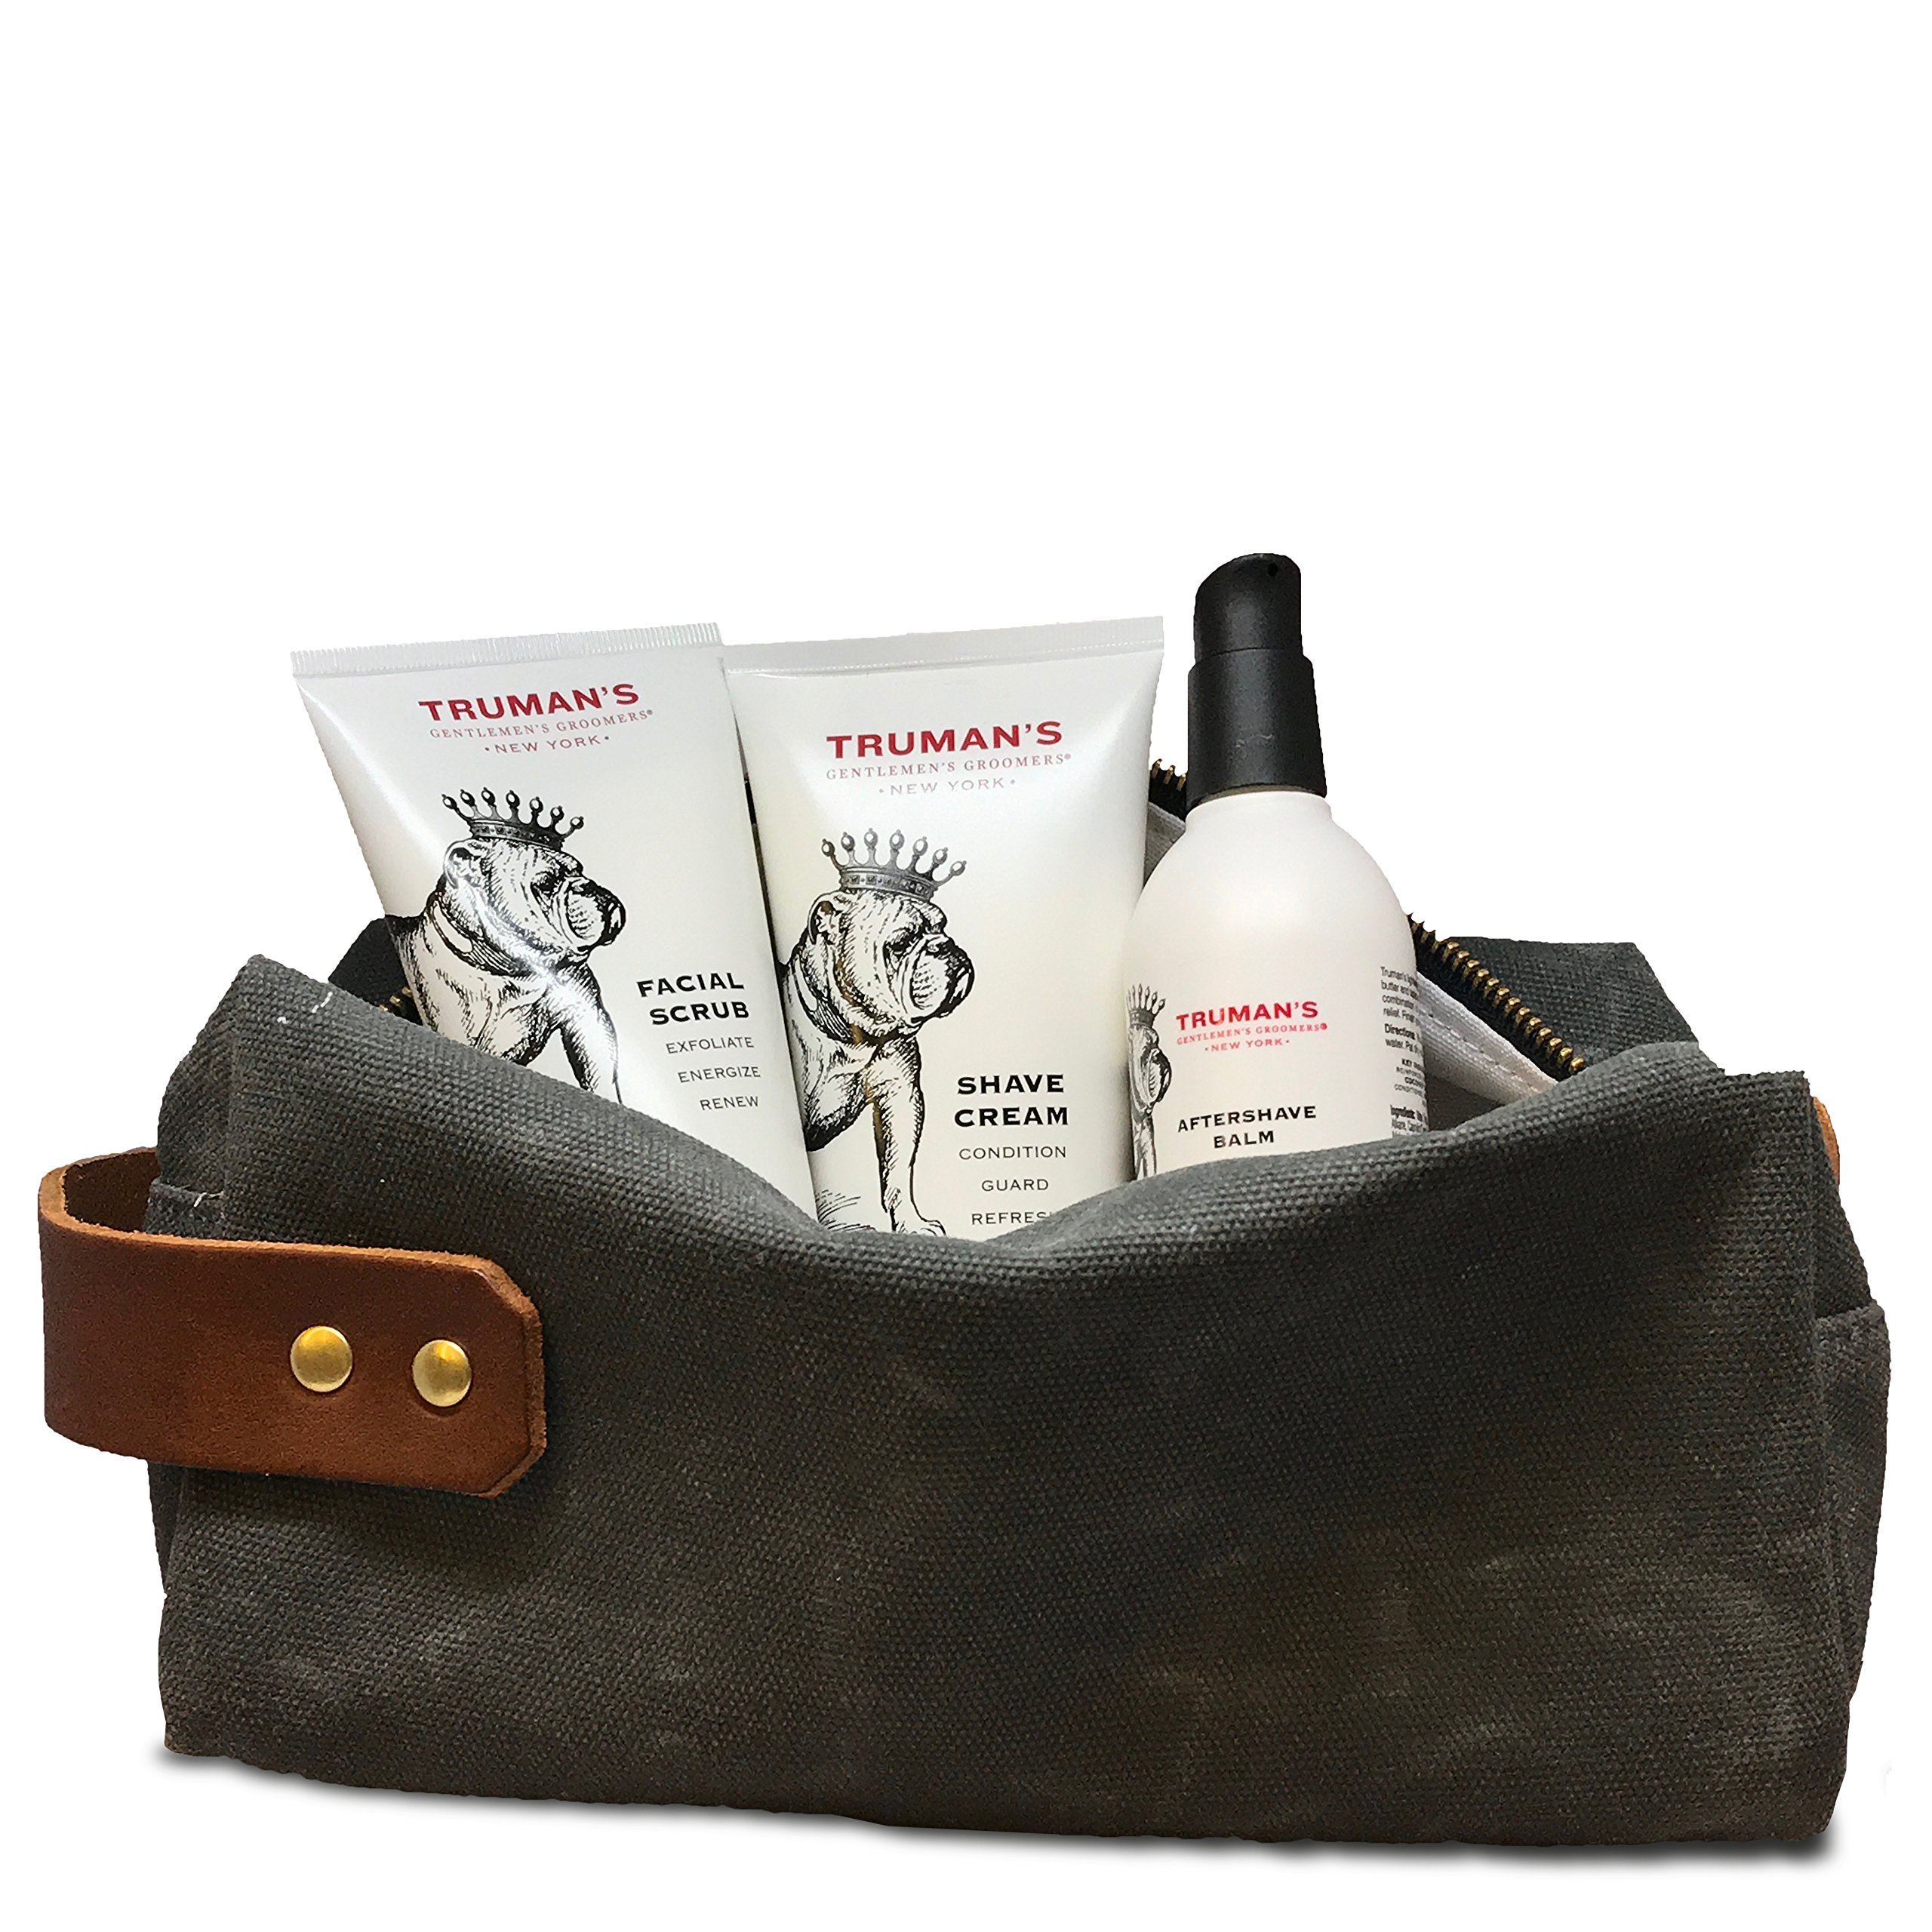 Truman's Gentlemen Groomers Holiday Dobb Kit, Facial Scrub, Shave Cream, and Aftershave Balm